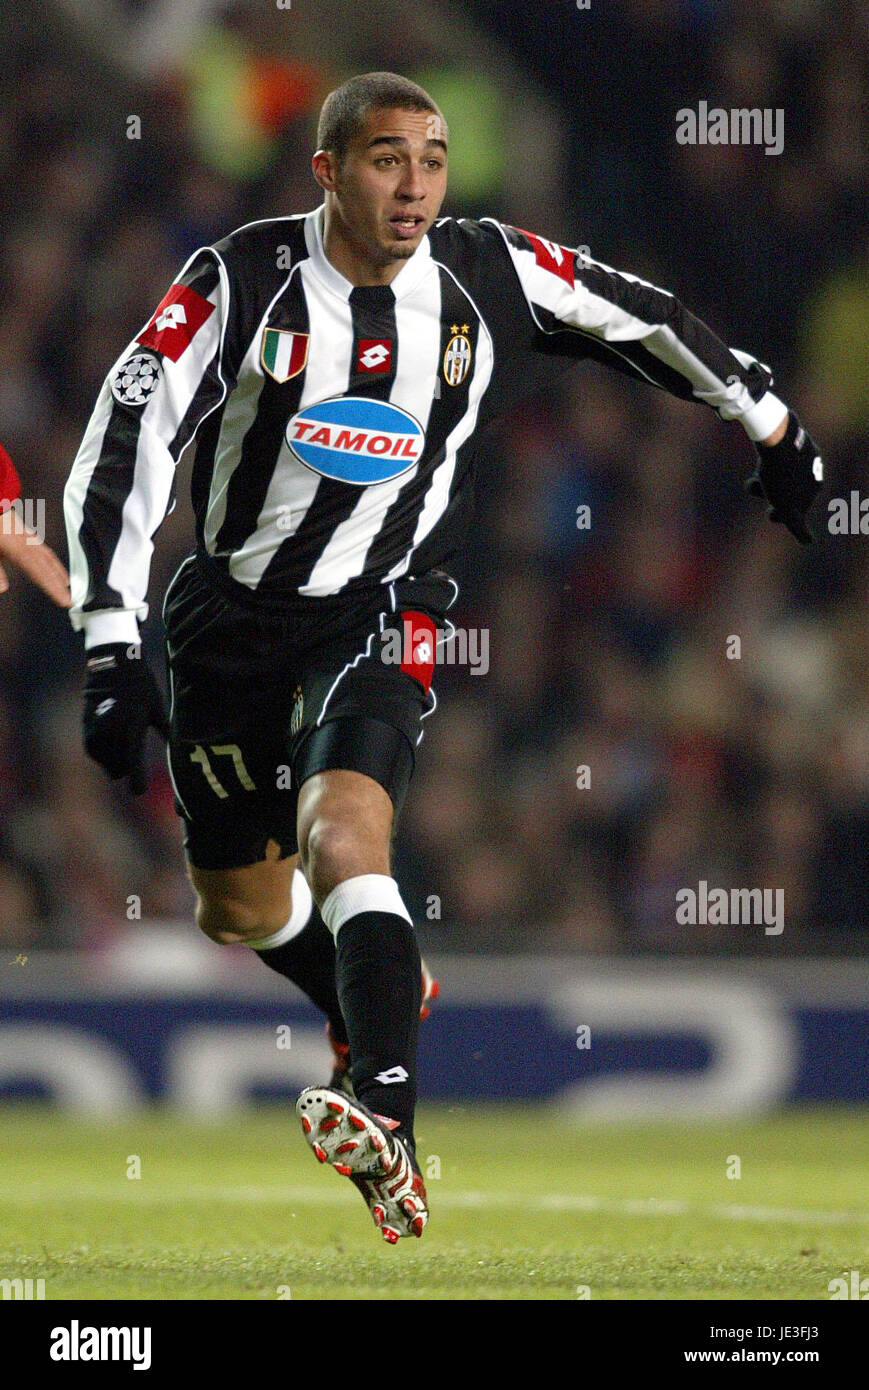 david trezeguet juventus - photo #27